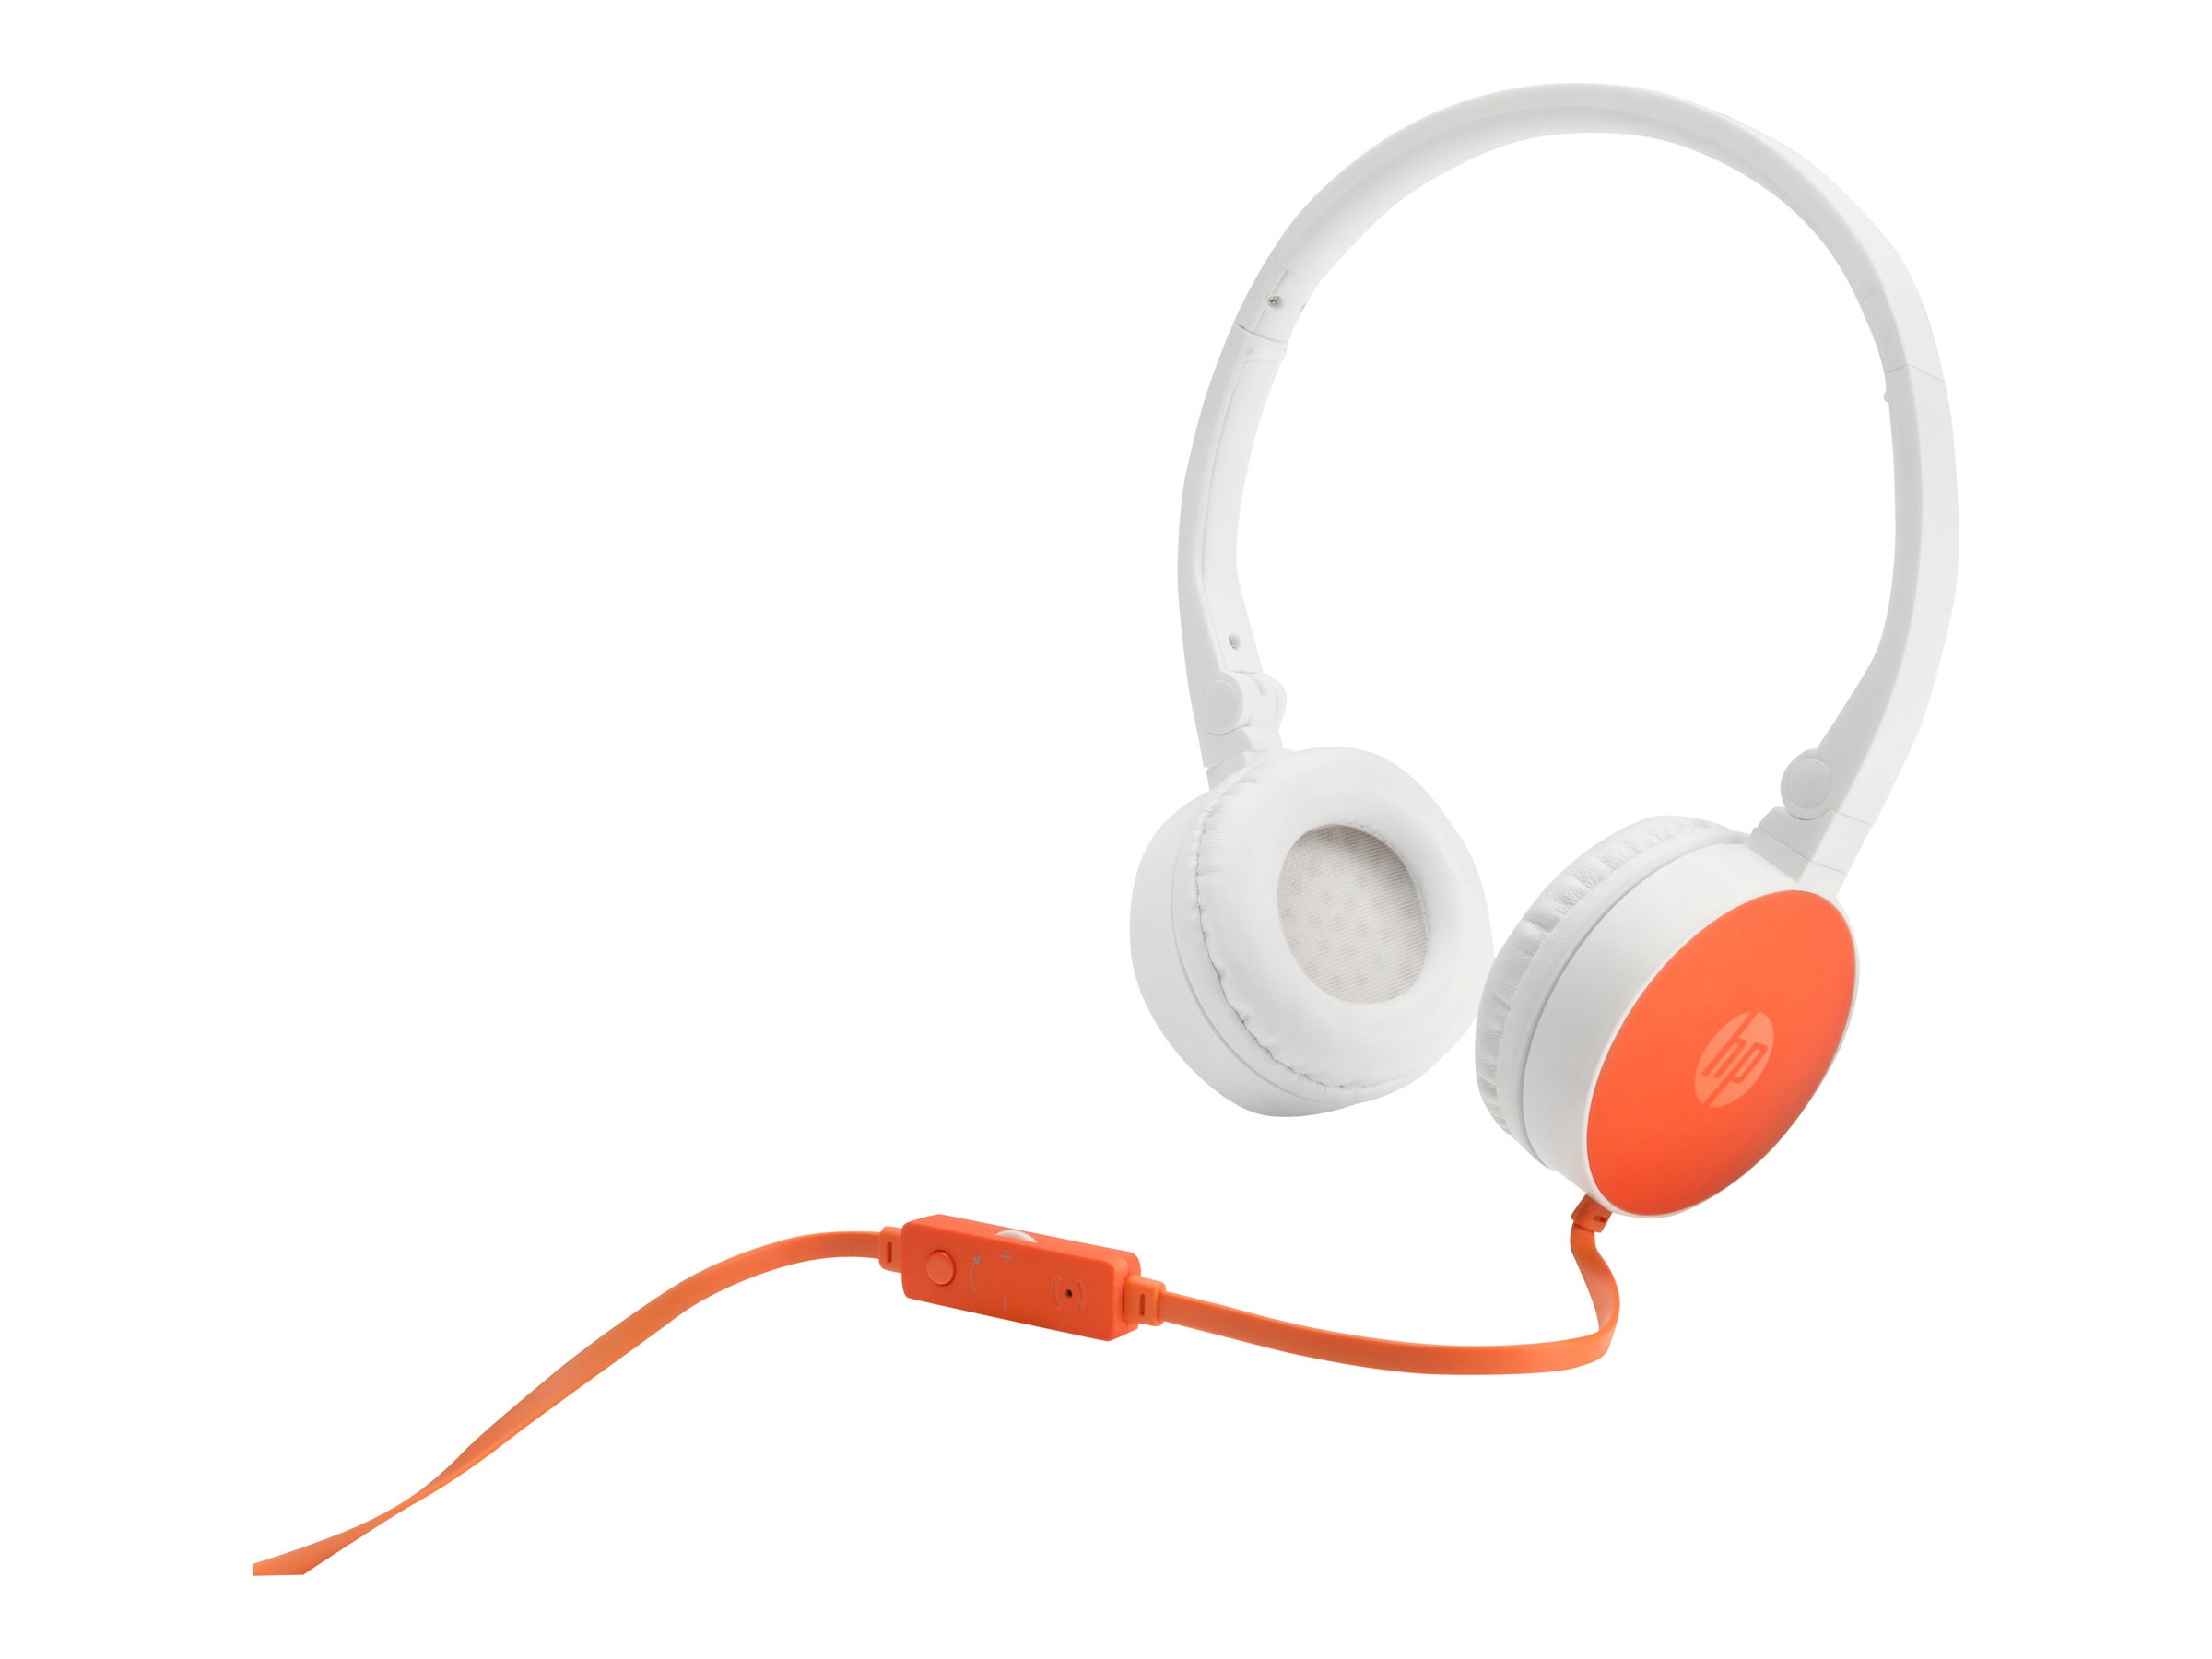 HP H2800 - Headset - On-Ear - verkabelt - weiß, orange - für OMEN X by HP 17; HP 17; ENVY x360; Pavilion Gaming; Pavilion x360; Spectre x360; x360